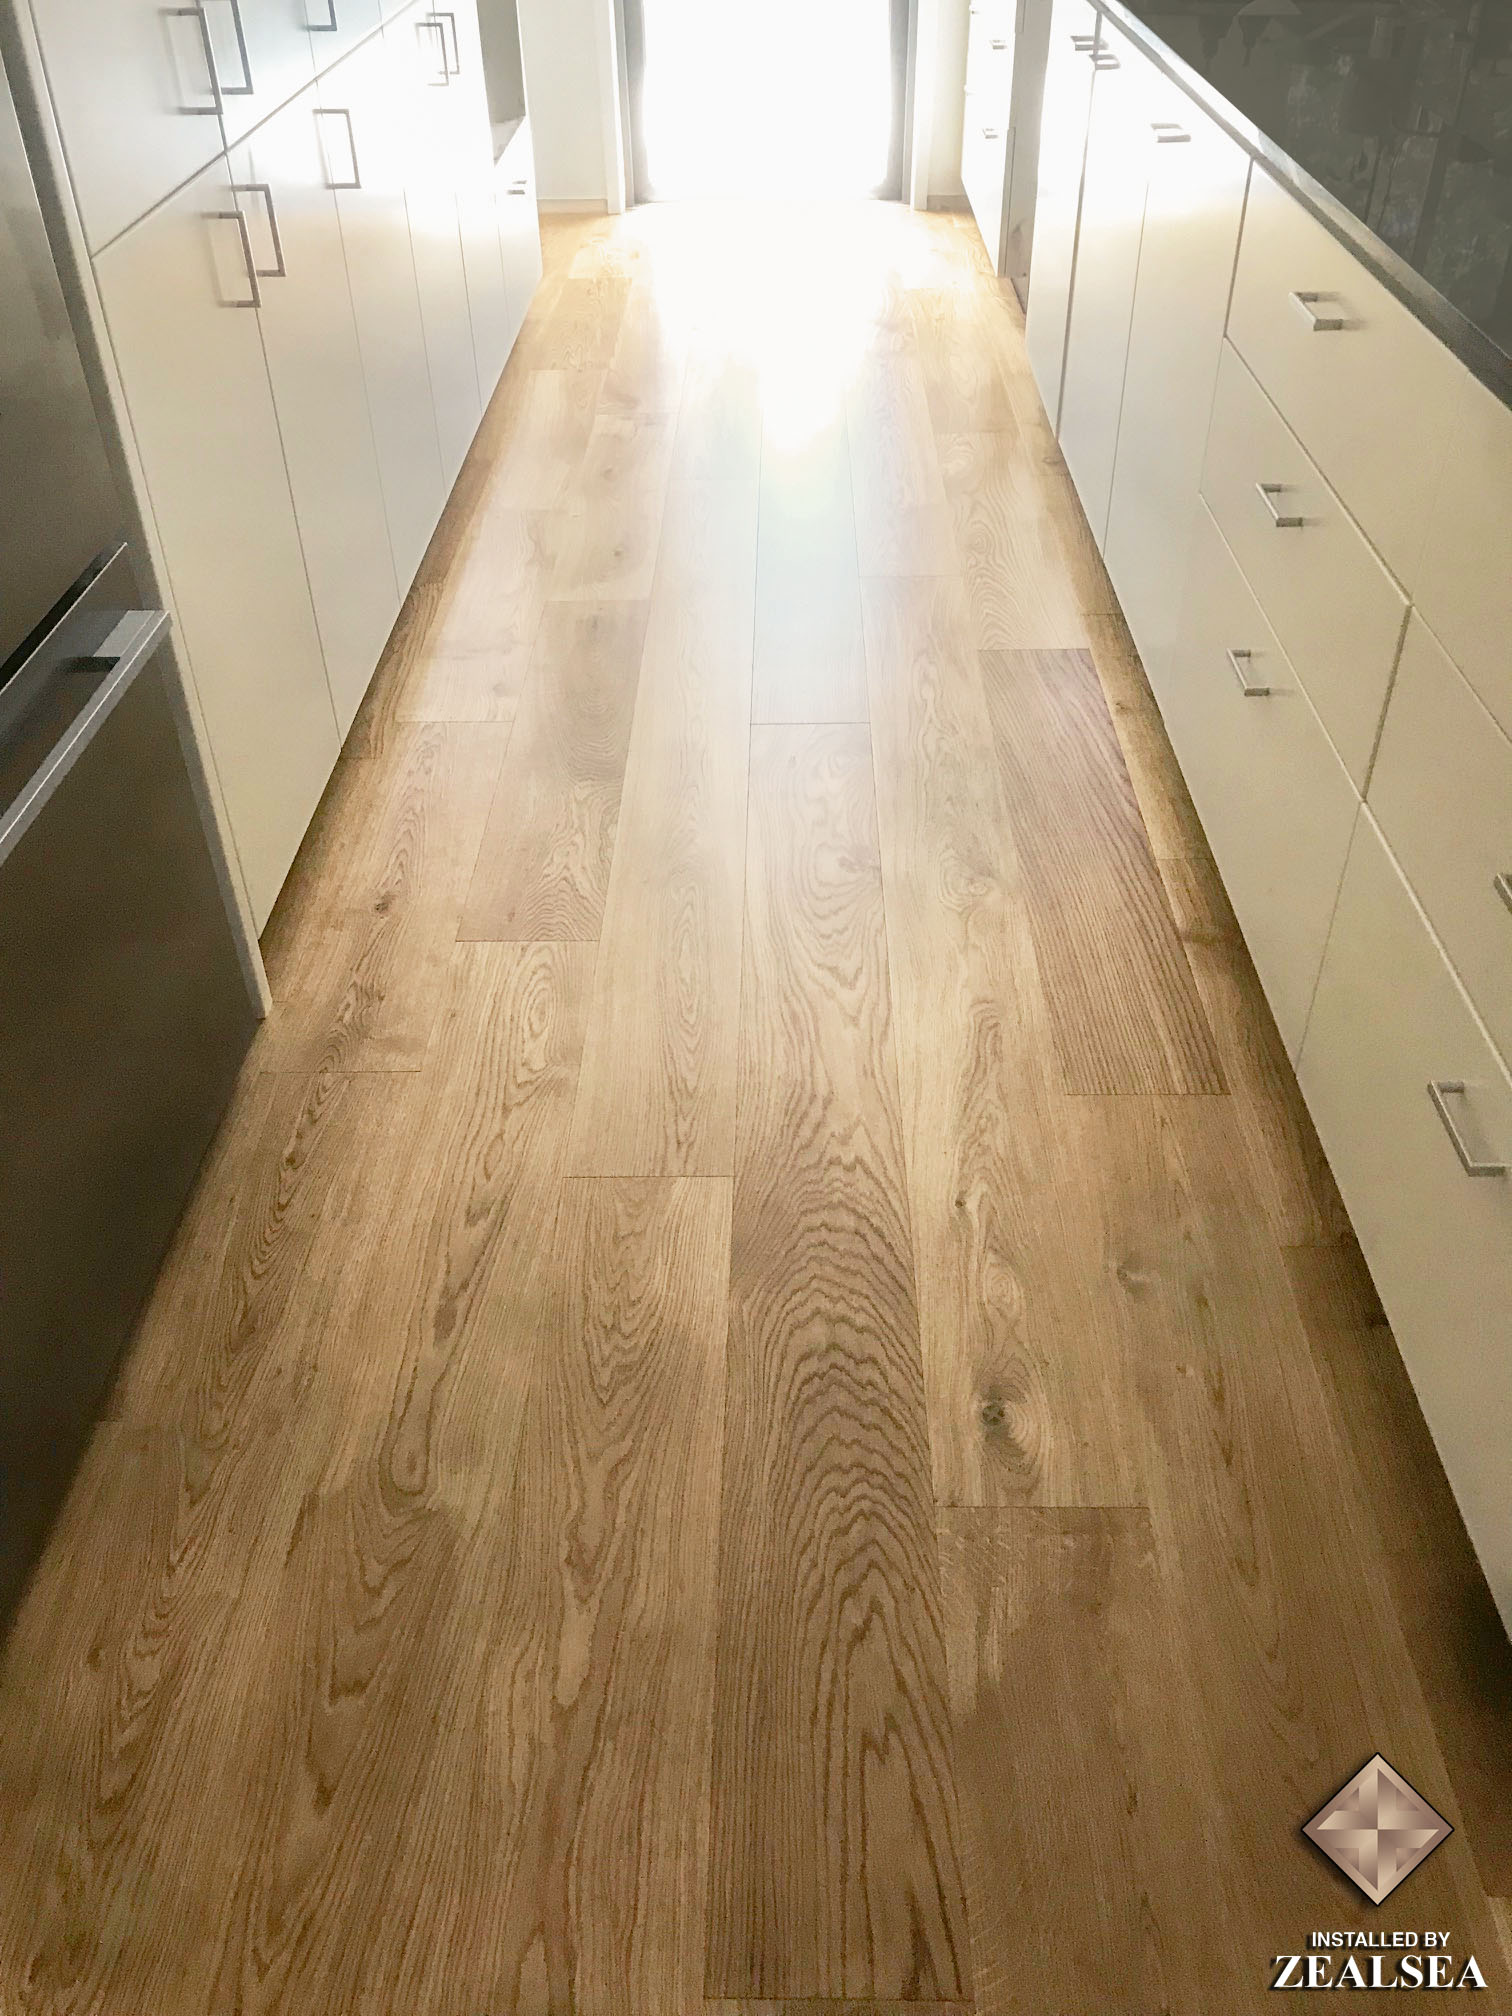 zealsea timber flooring professional installation new farm coswick natural 4